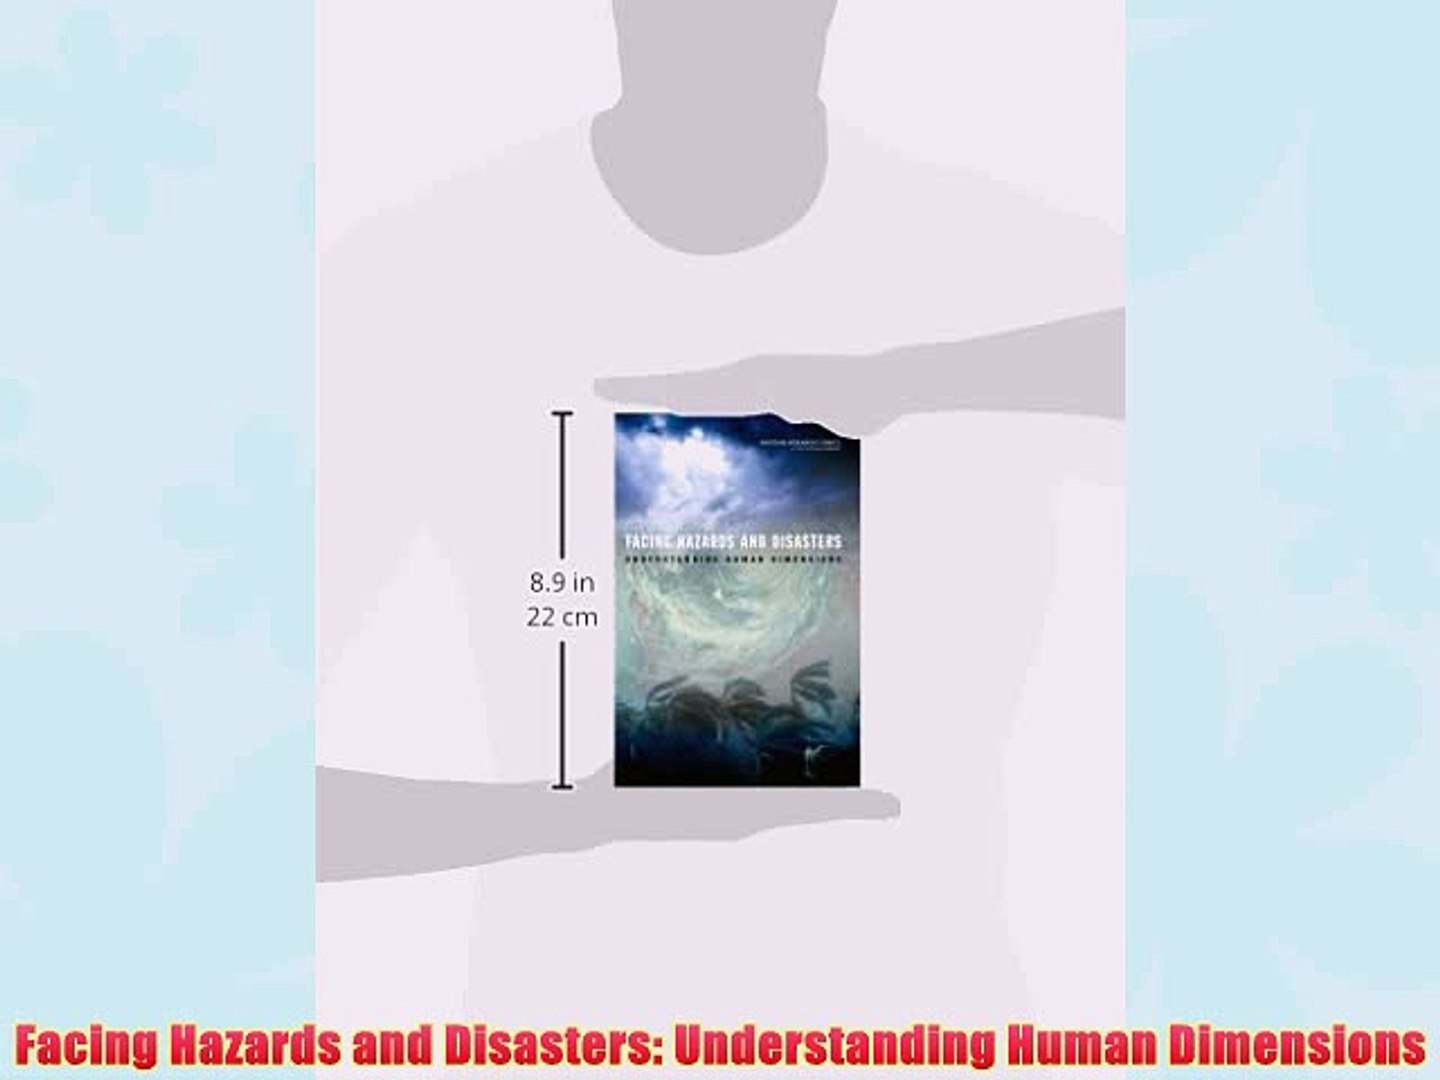 Facing Hazards and Disasters: Understanding Human Dimensions